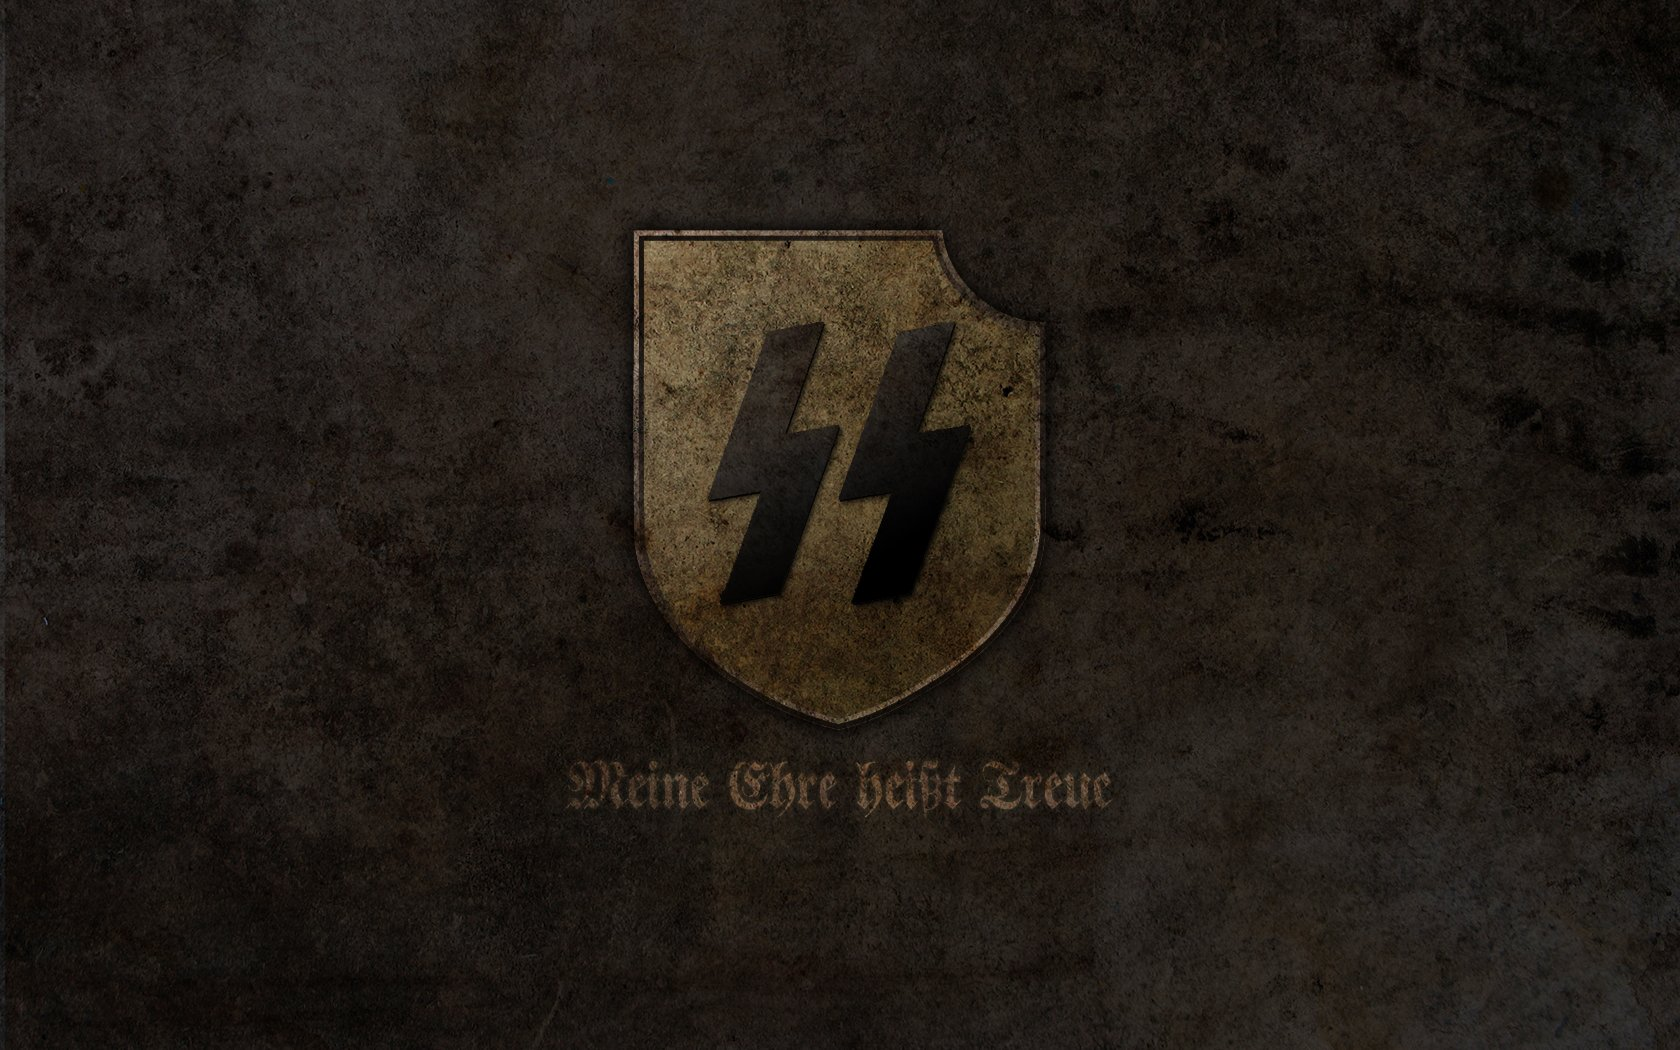 nazi wallpapers page 1 - photo #25